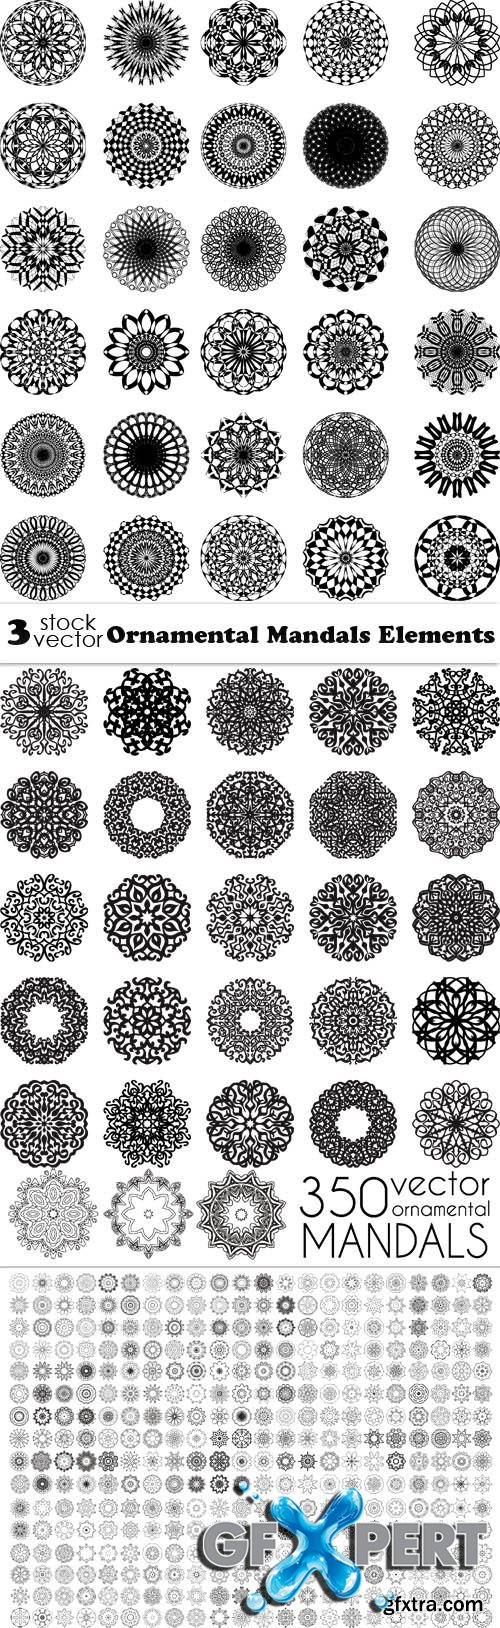 Vectors - Ornamental Mandalas Elements